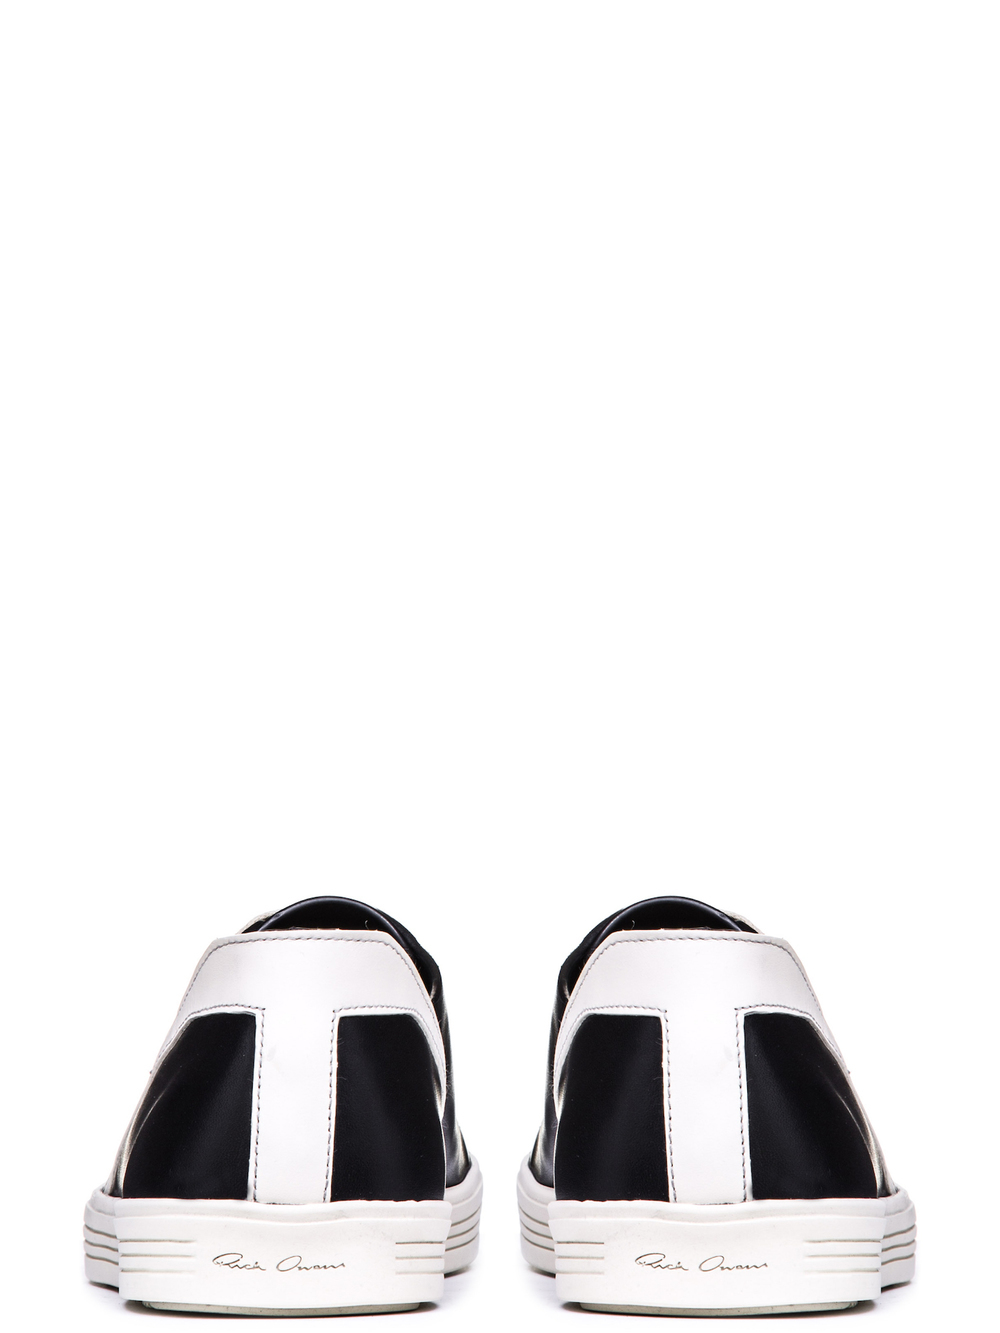 RICK OWENS GEOTHRASHER SHOES IN BLACK LEATHER